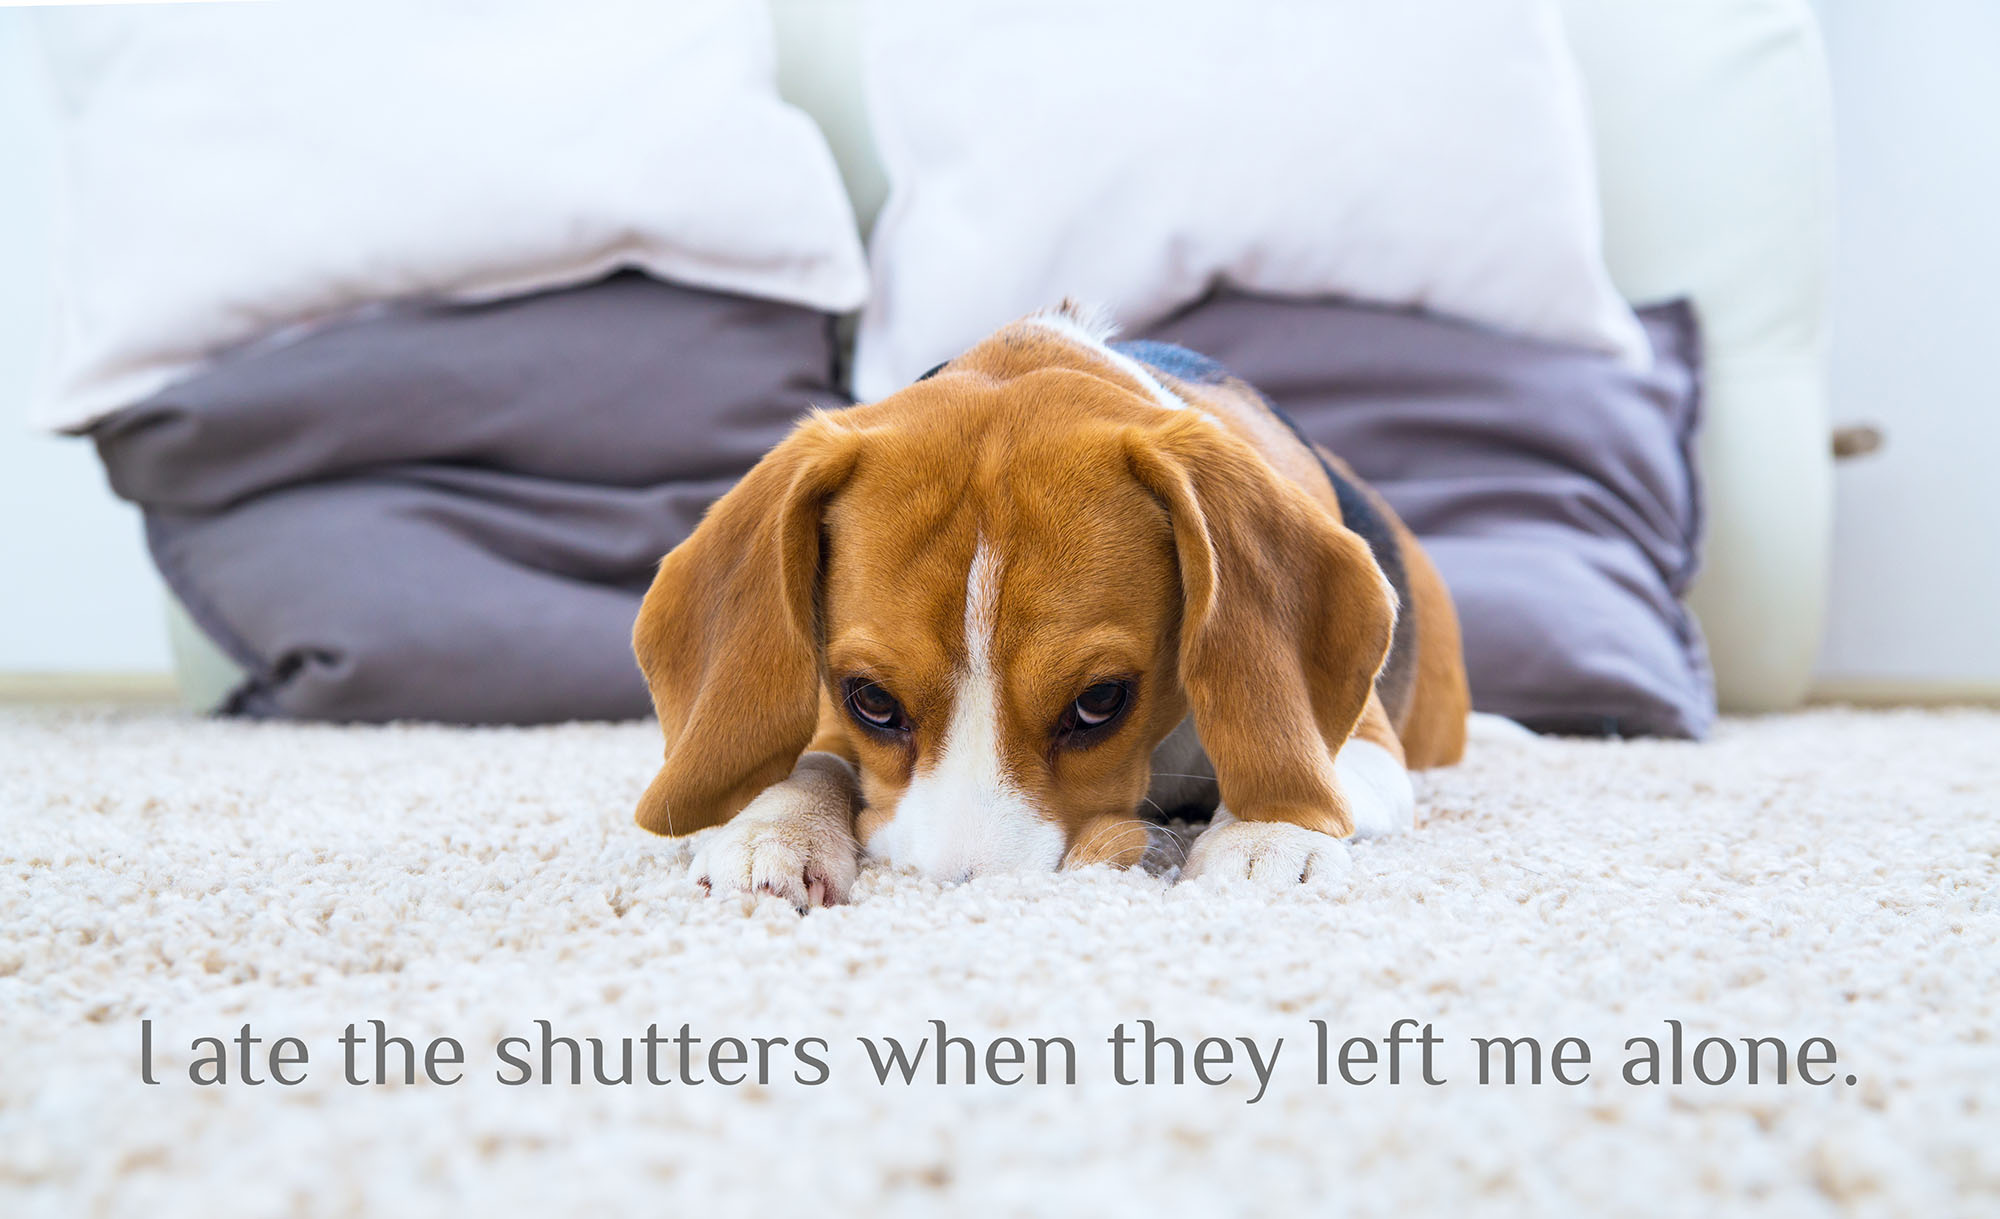 I ate the shutters when they left me alone.